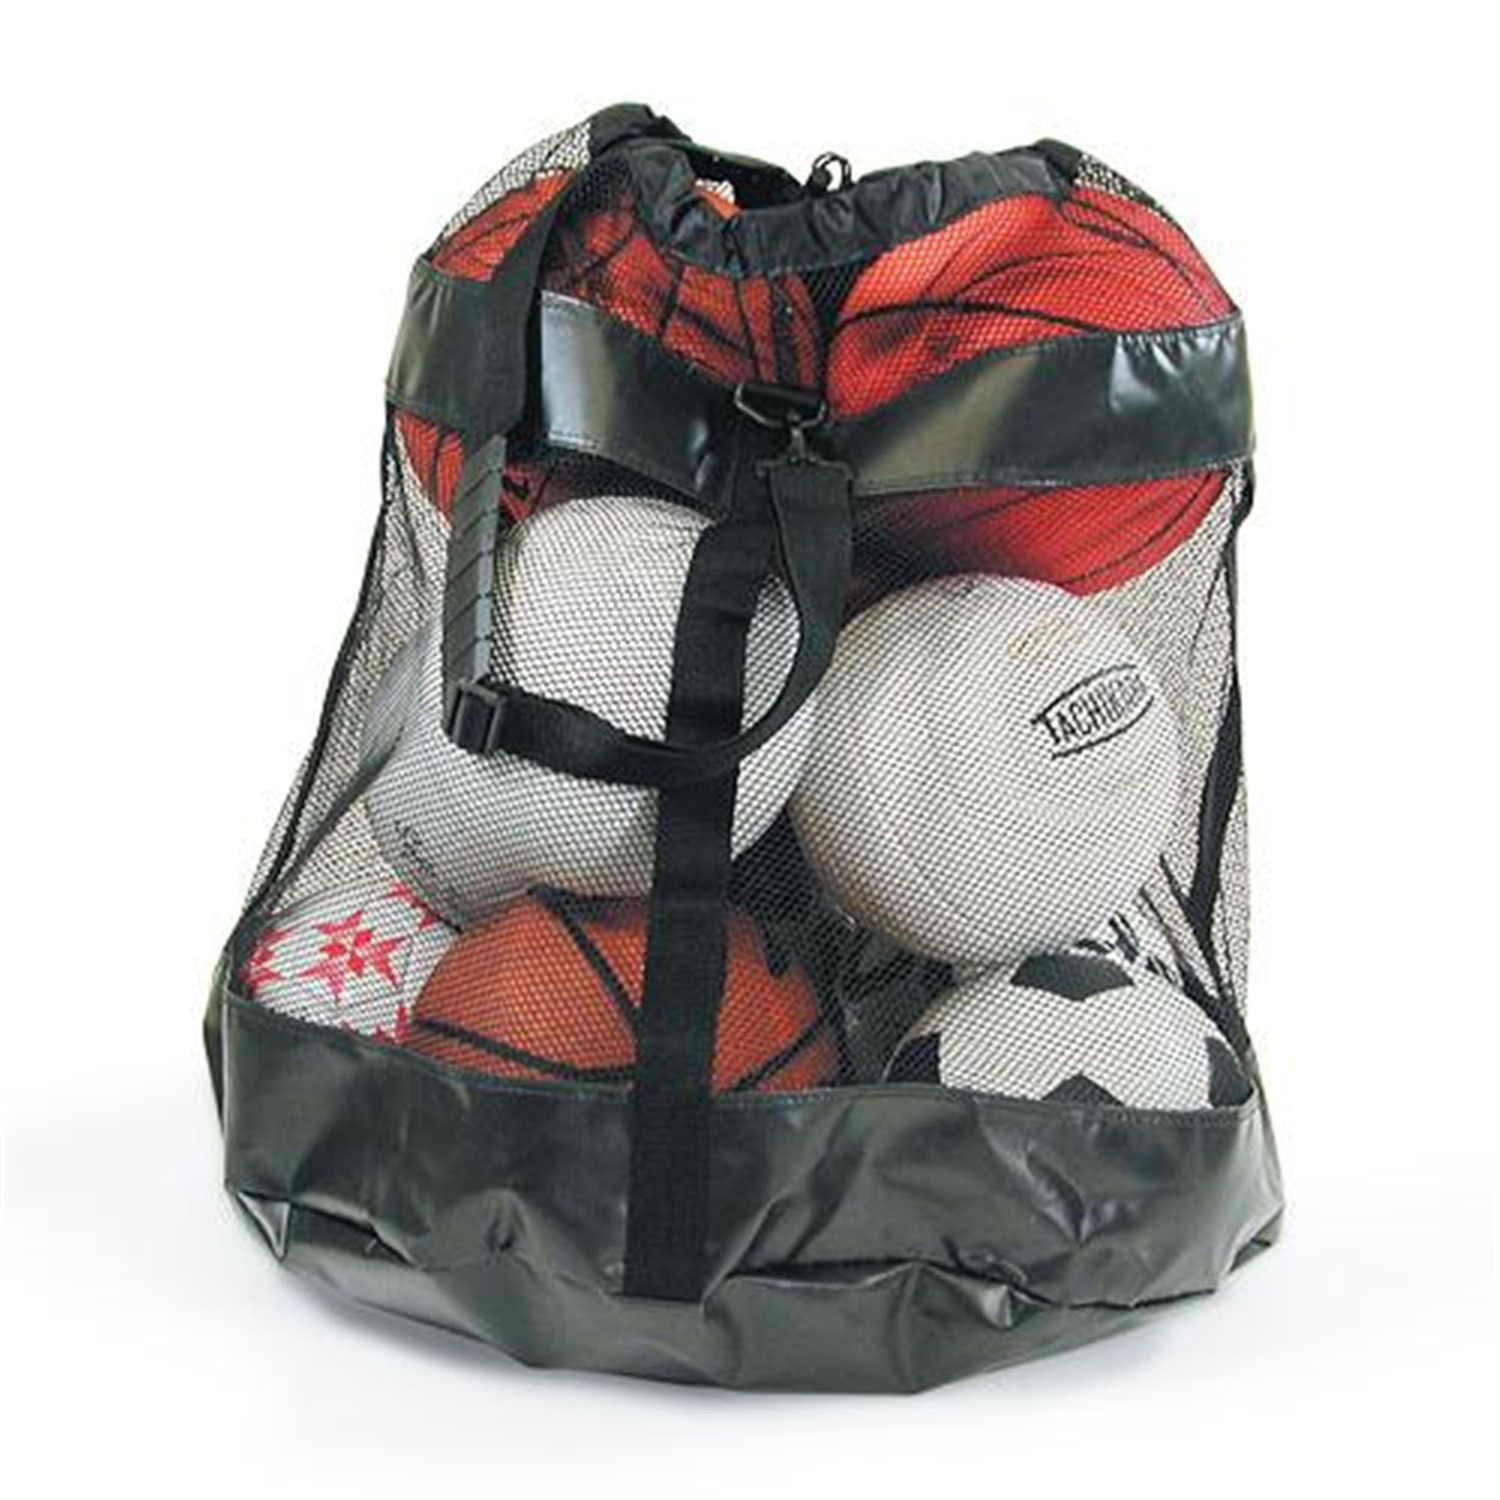 Mesh Ball Carrier - [1235654]